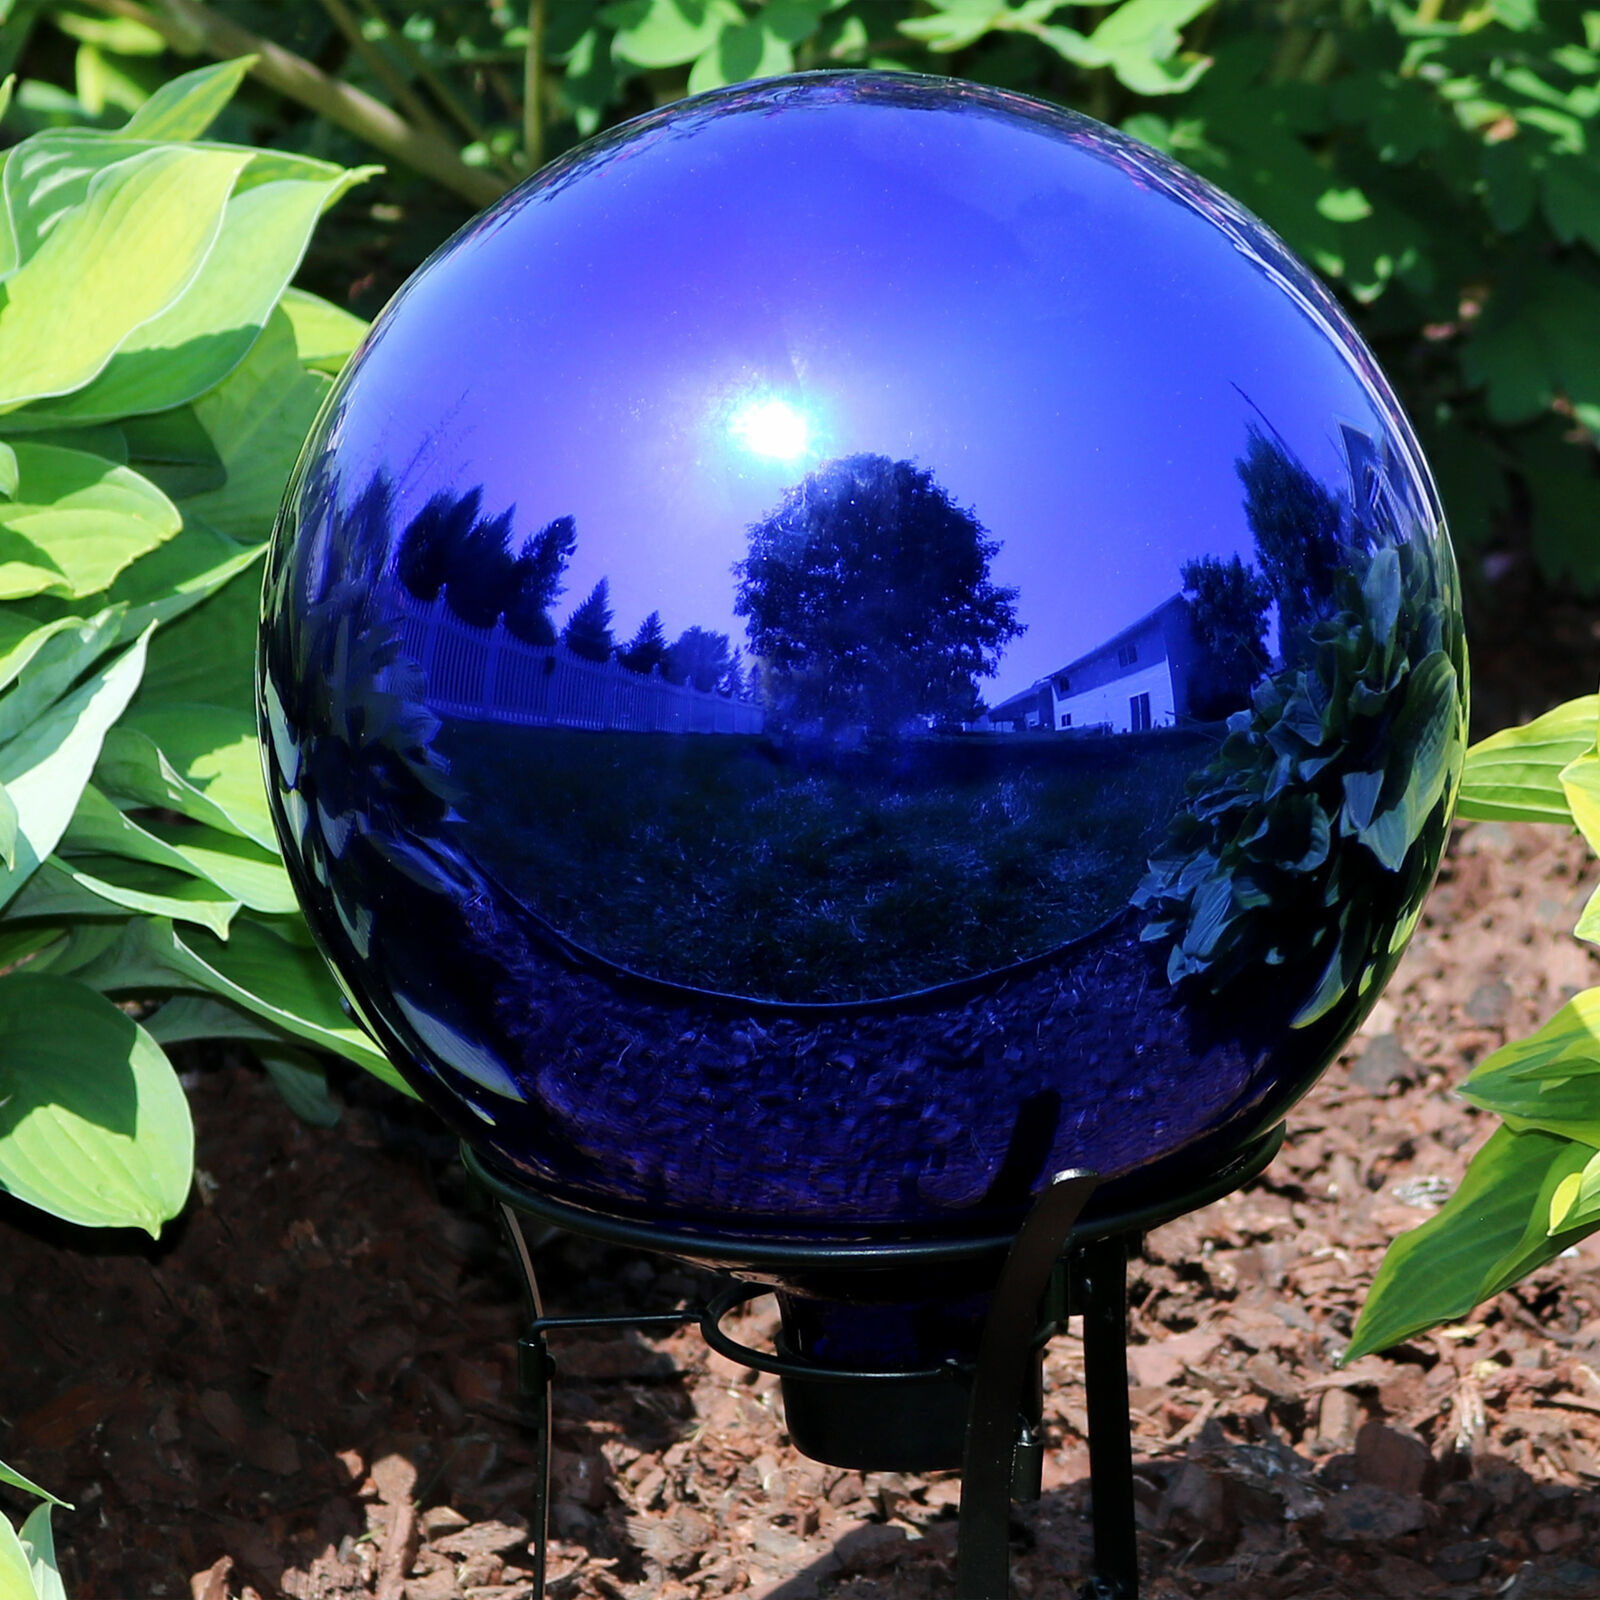 FixWhat 10 in Gazing Ball,Blue Stainless Steel Mirror Globe,Polished Reflective Smooth Garden Sphere,for Garden Home Decoration with Colorful Shiny Addition